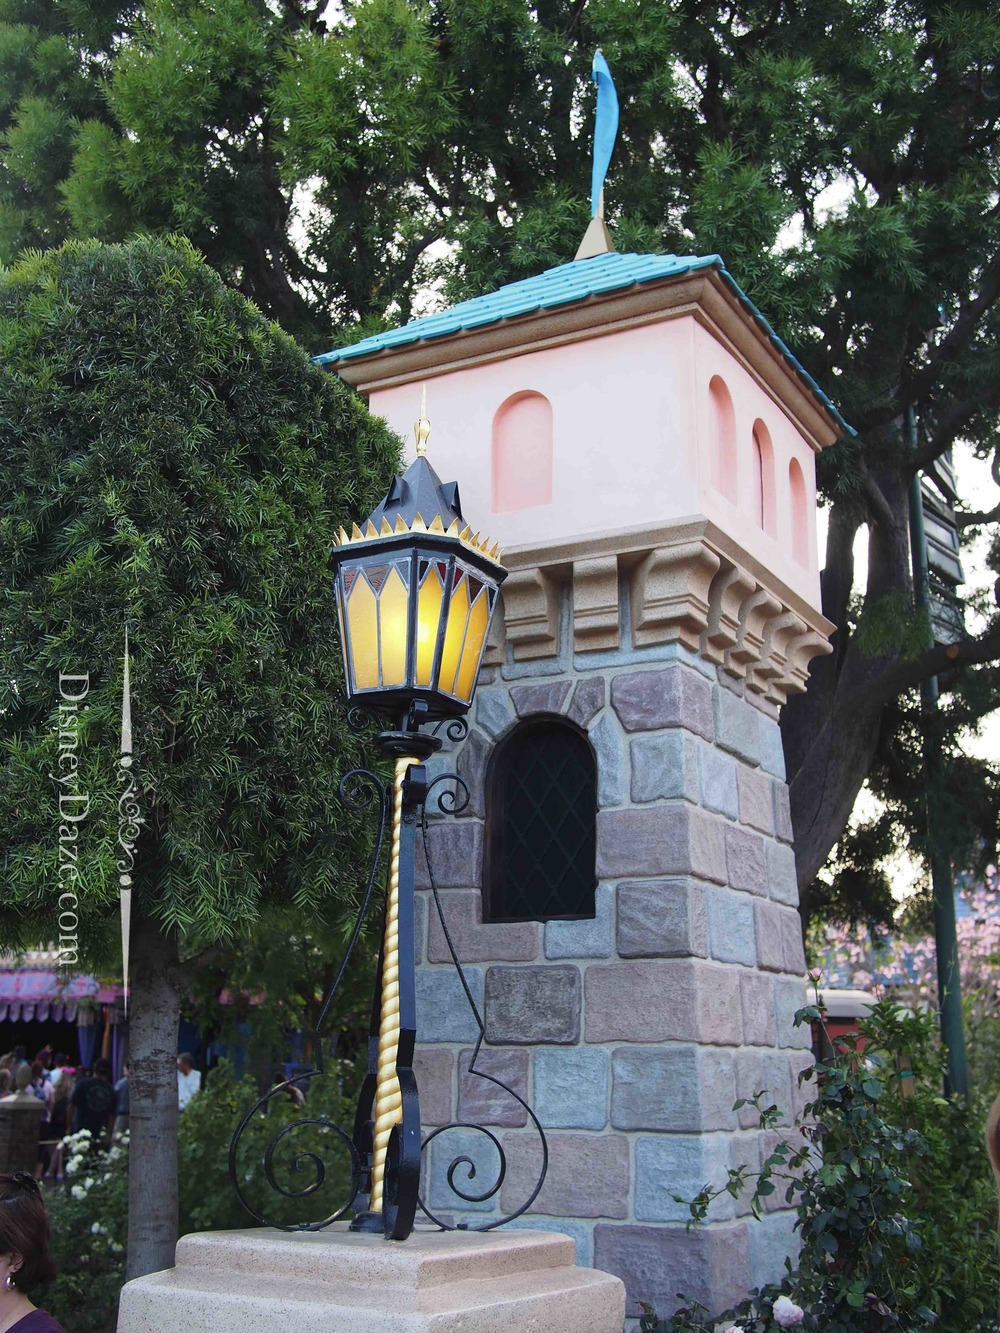 This tower is located westside of the Castle, closet to Fantasy Faire.